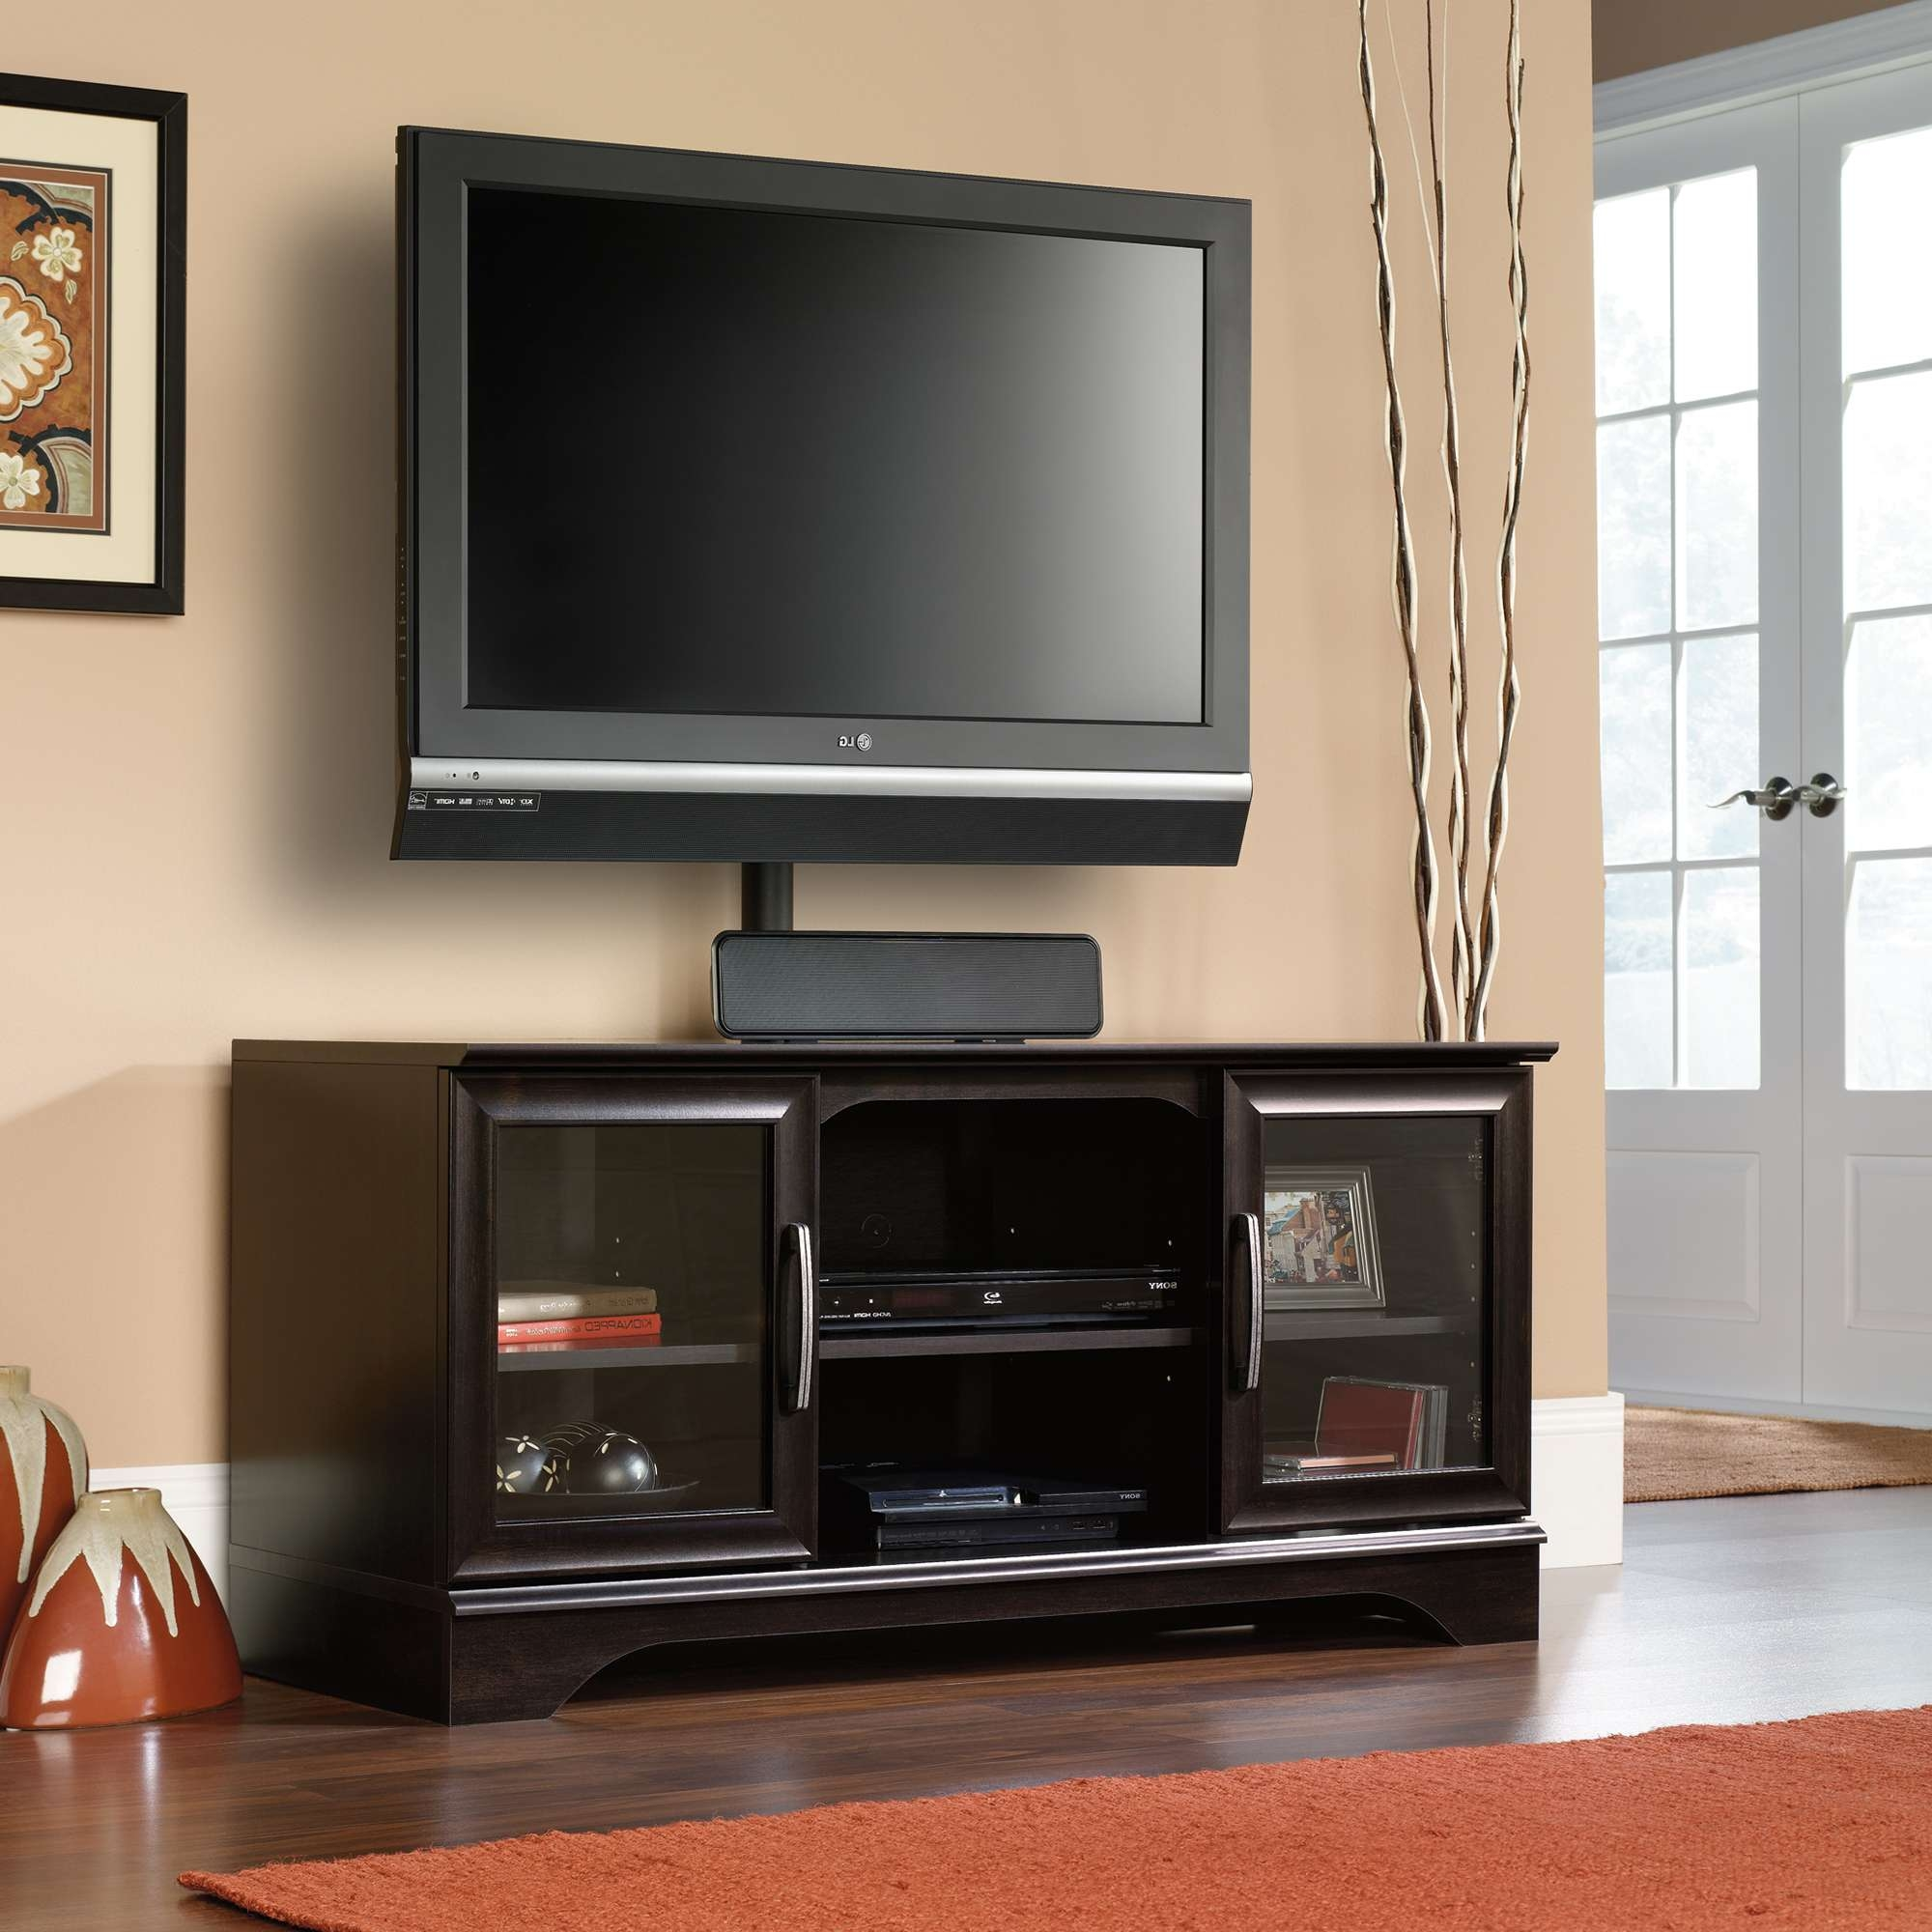 Wood Tv Standh Mount Solid Mountwood Swivel Storage Stands Flat Intended For Solid Wood Black Tv Stands (View 15 of 15)